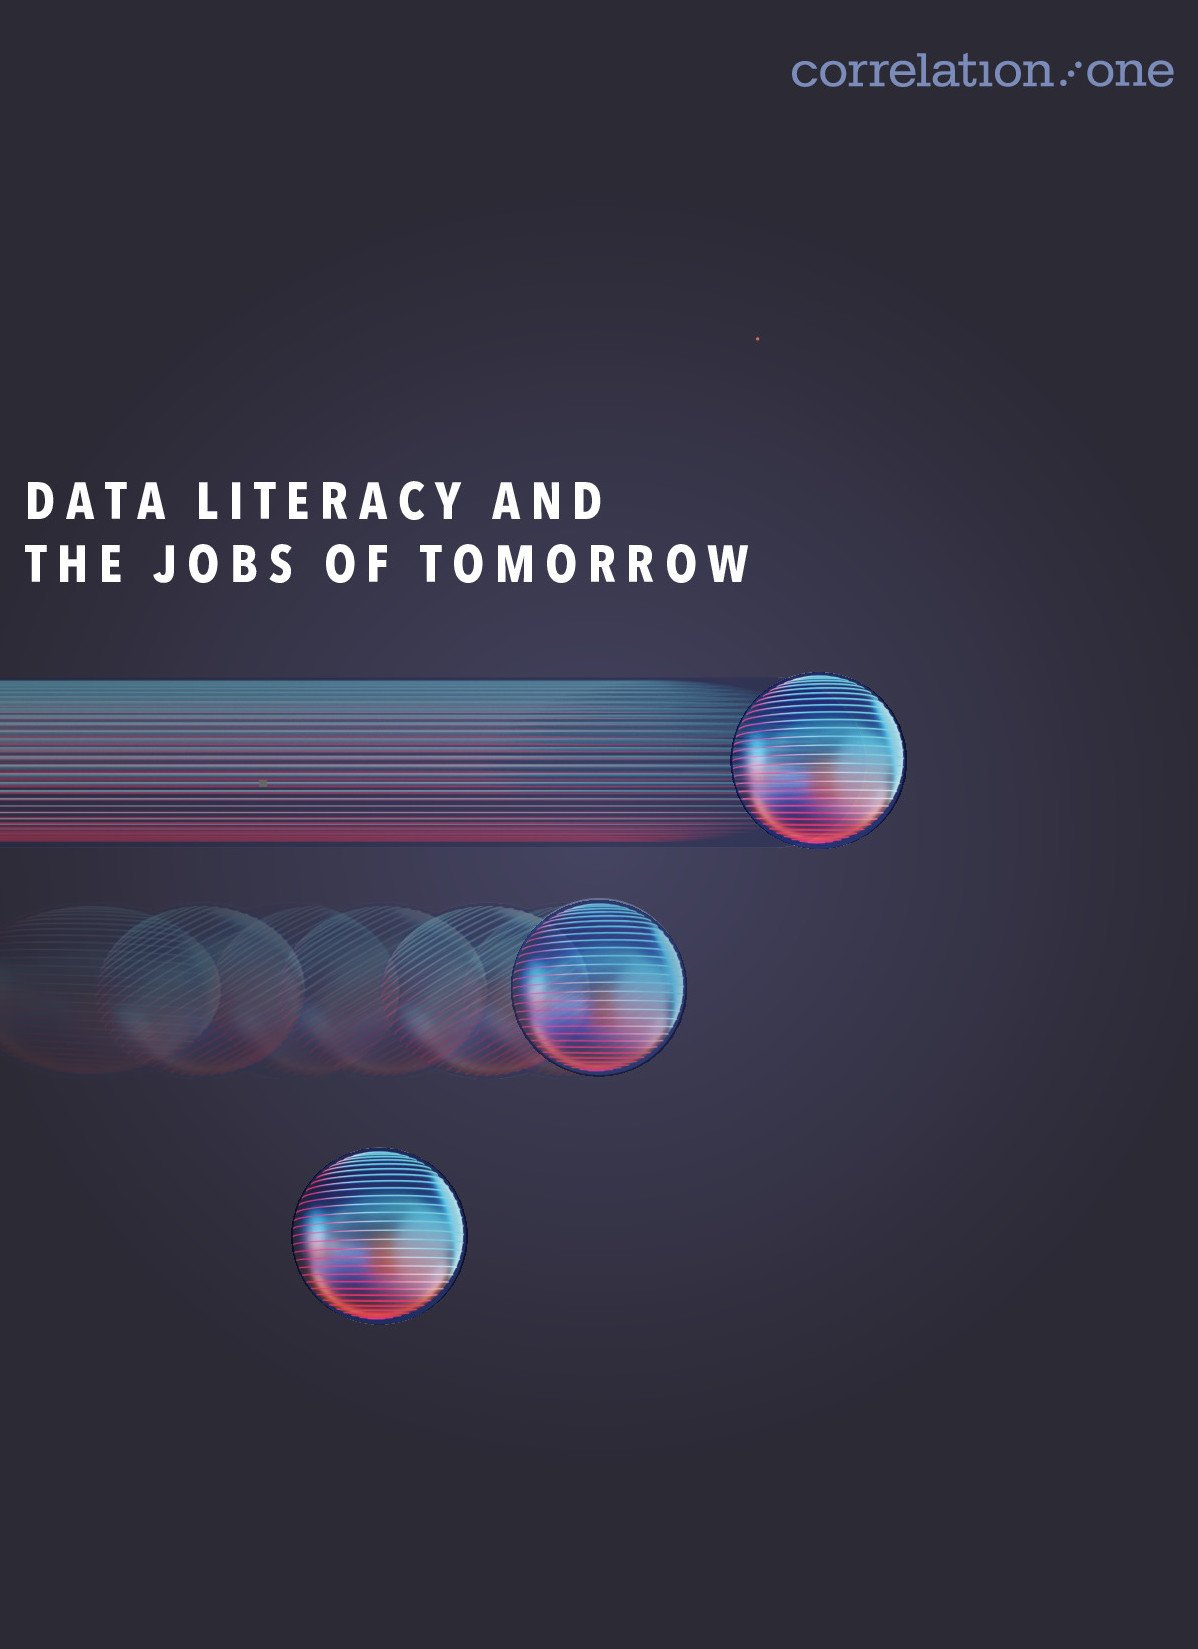 Data Science Solution for Enterprises: Data Literacy and the Jobs of Tomorrow